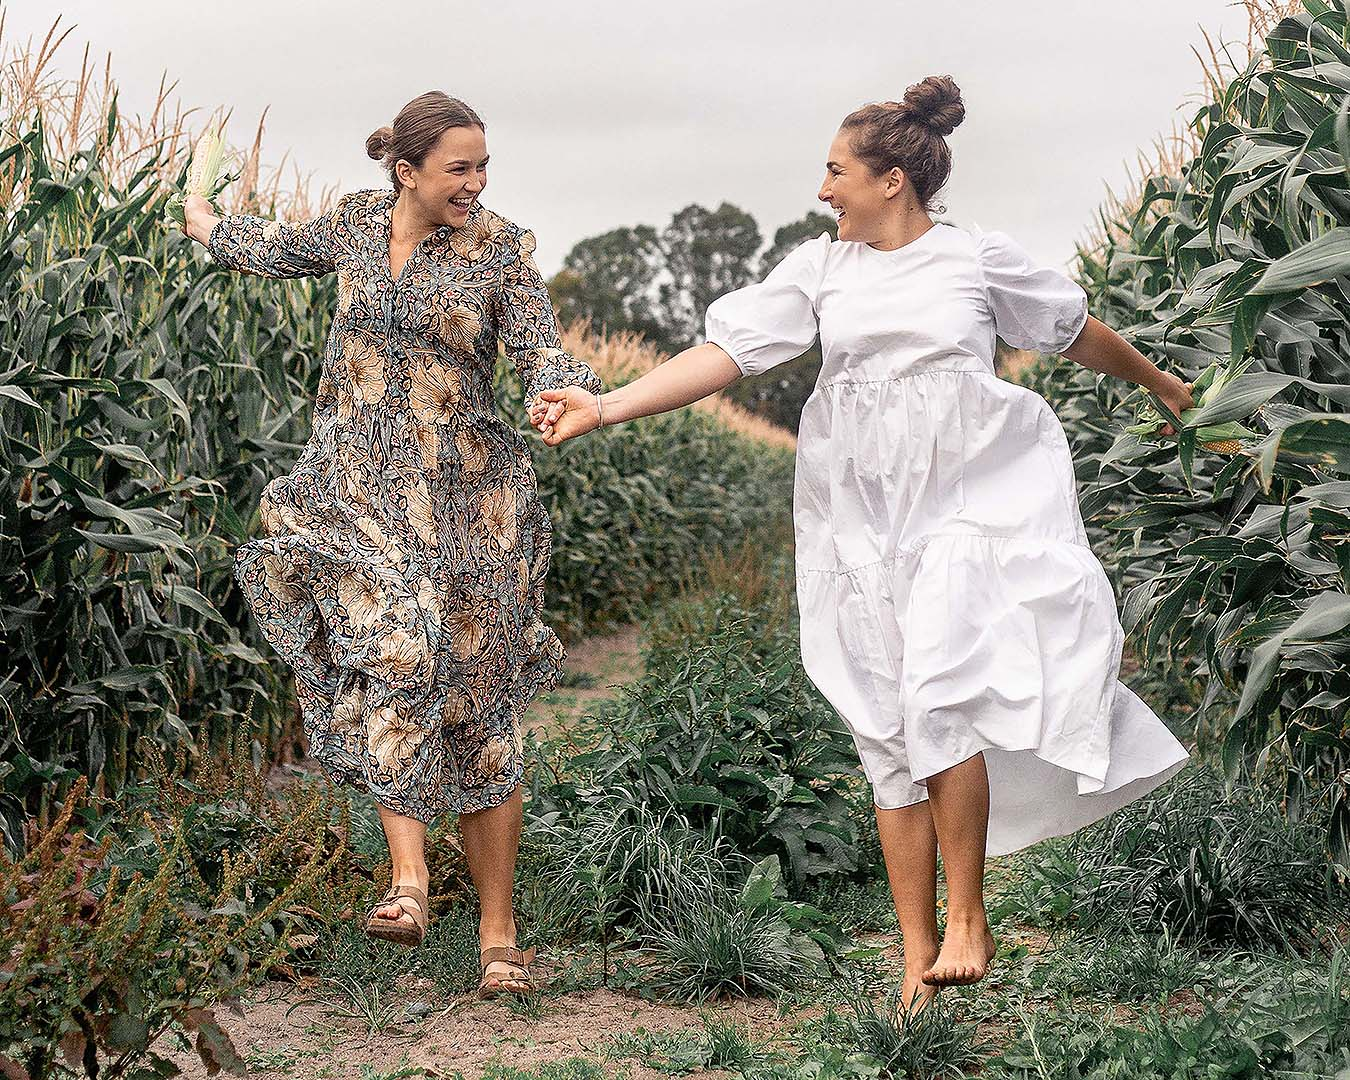 Margo And Rosa skip through a field together happy as clams.